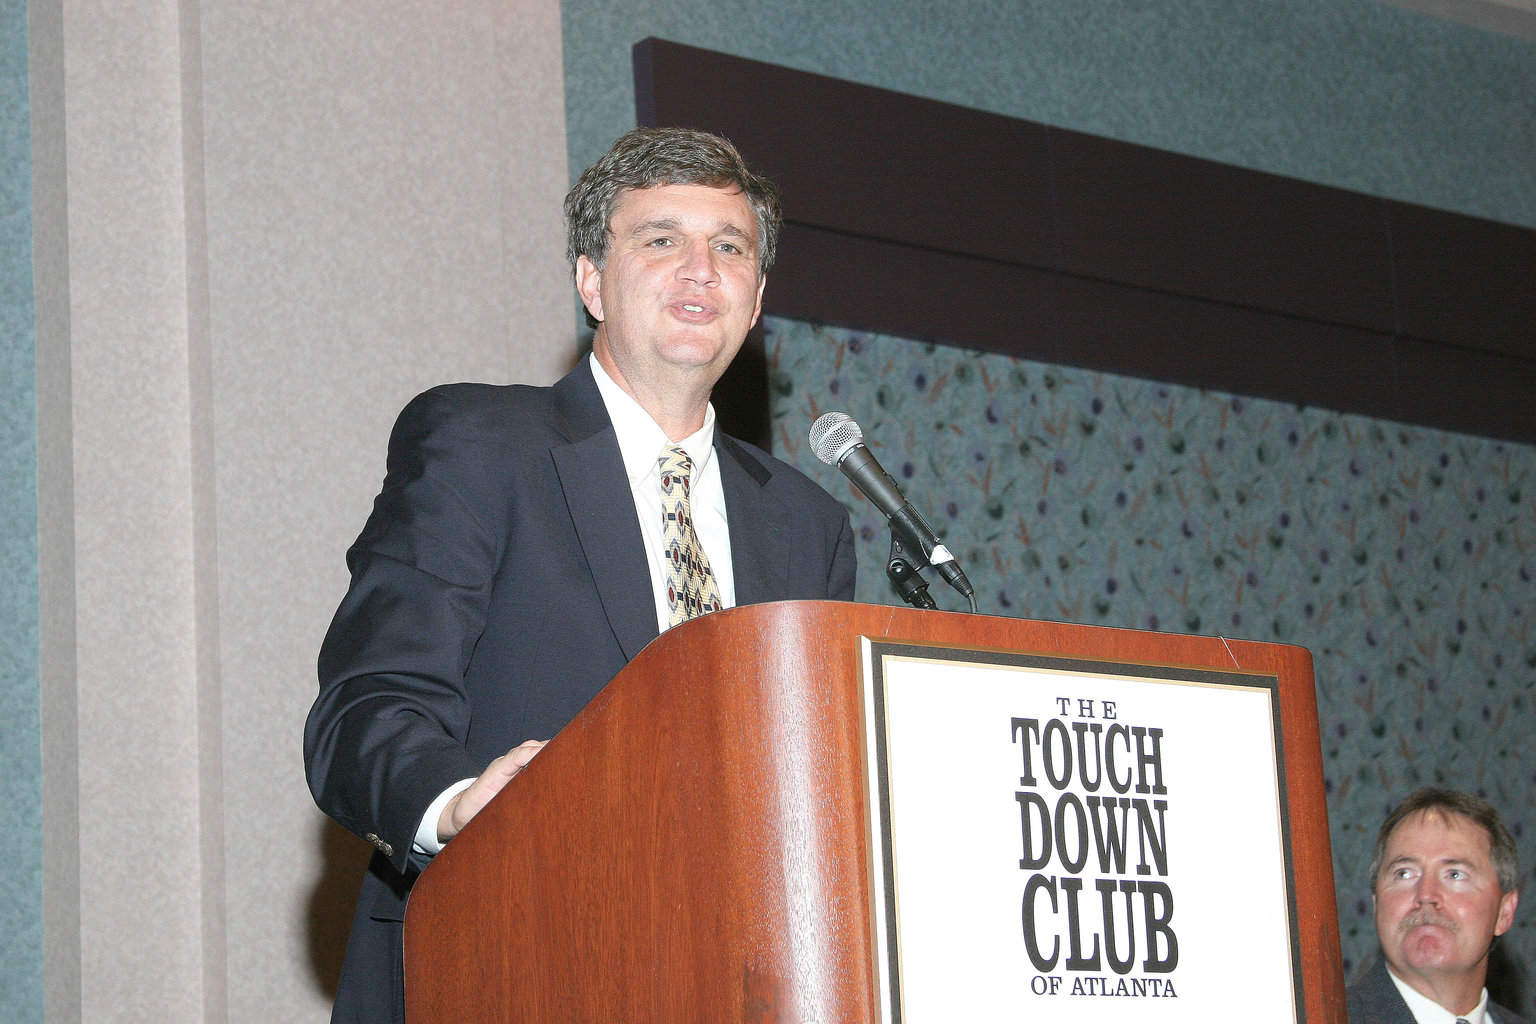 11-8-04 CPJ at the Podium